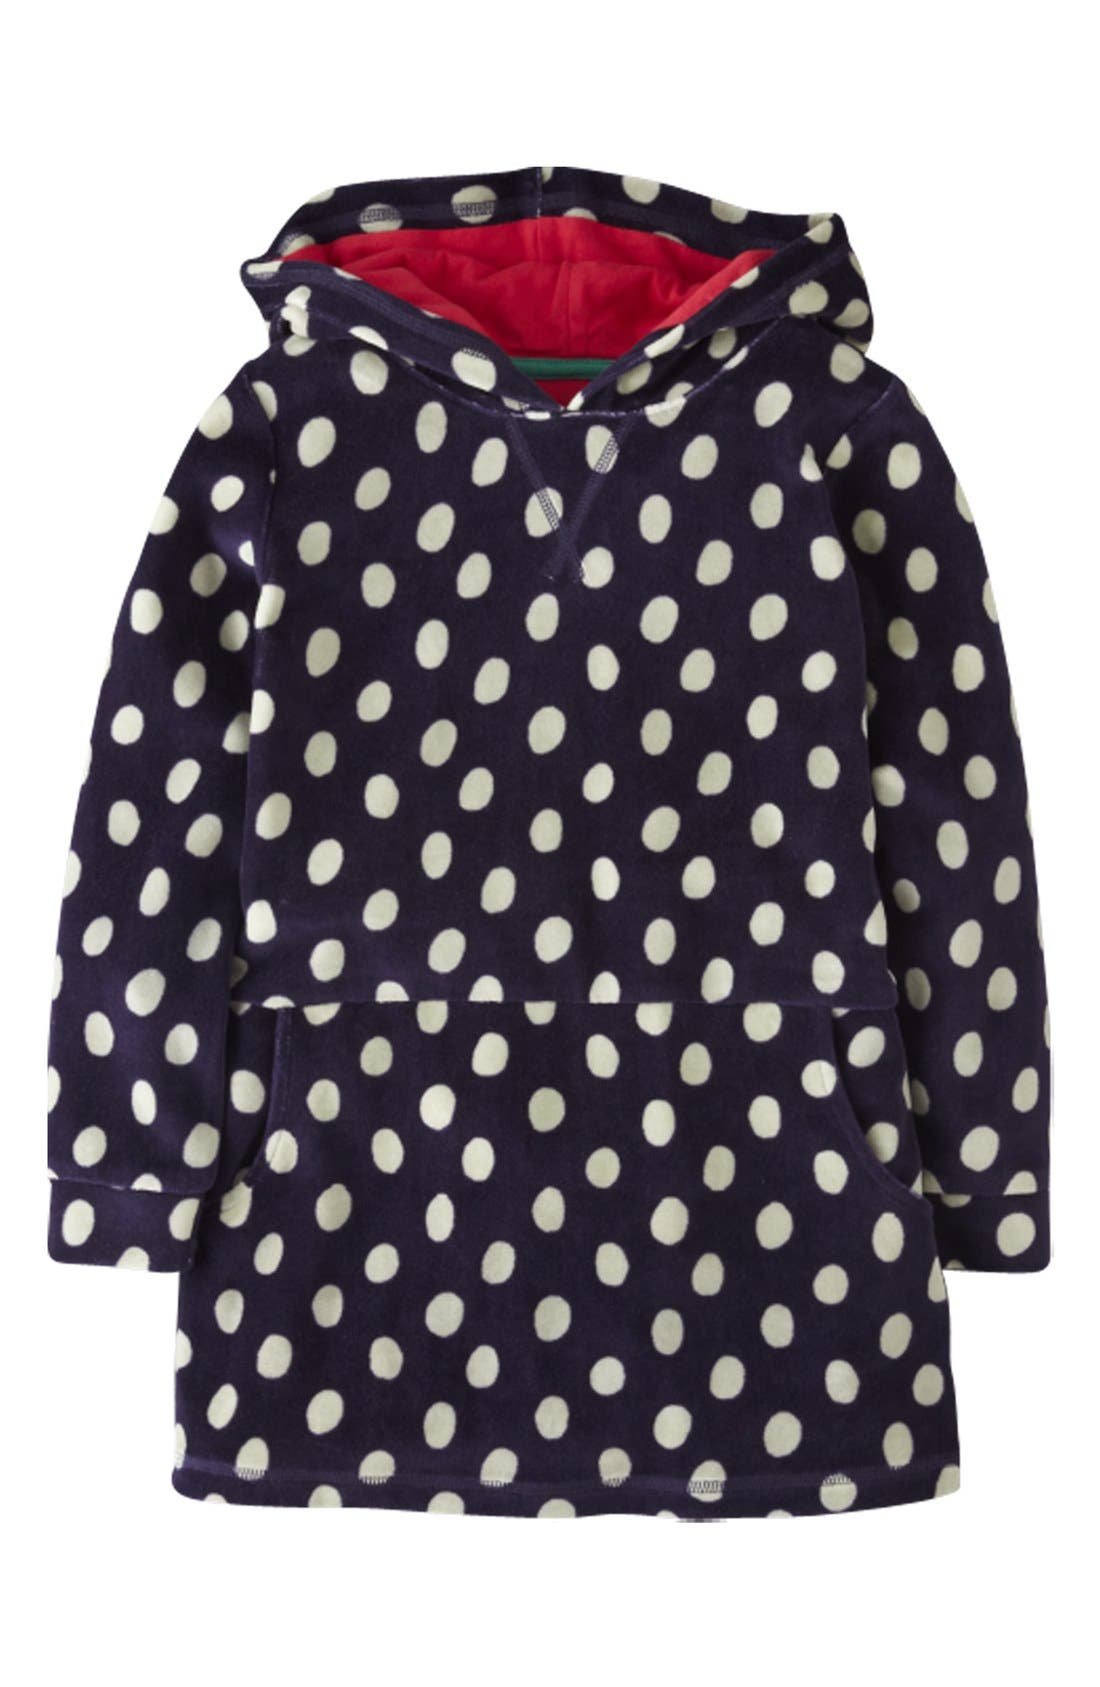 Alternate Image 1 Selected - Mini Boden Hooded Velour Dress (Little Girls & Big Girls)